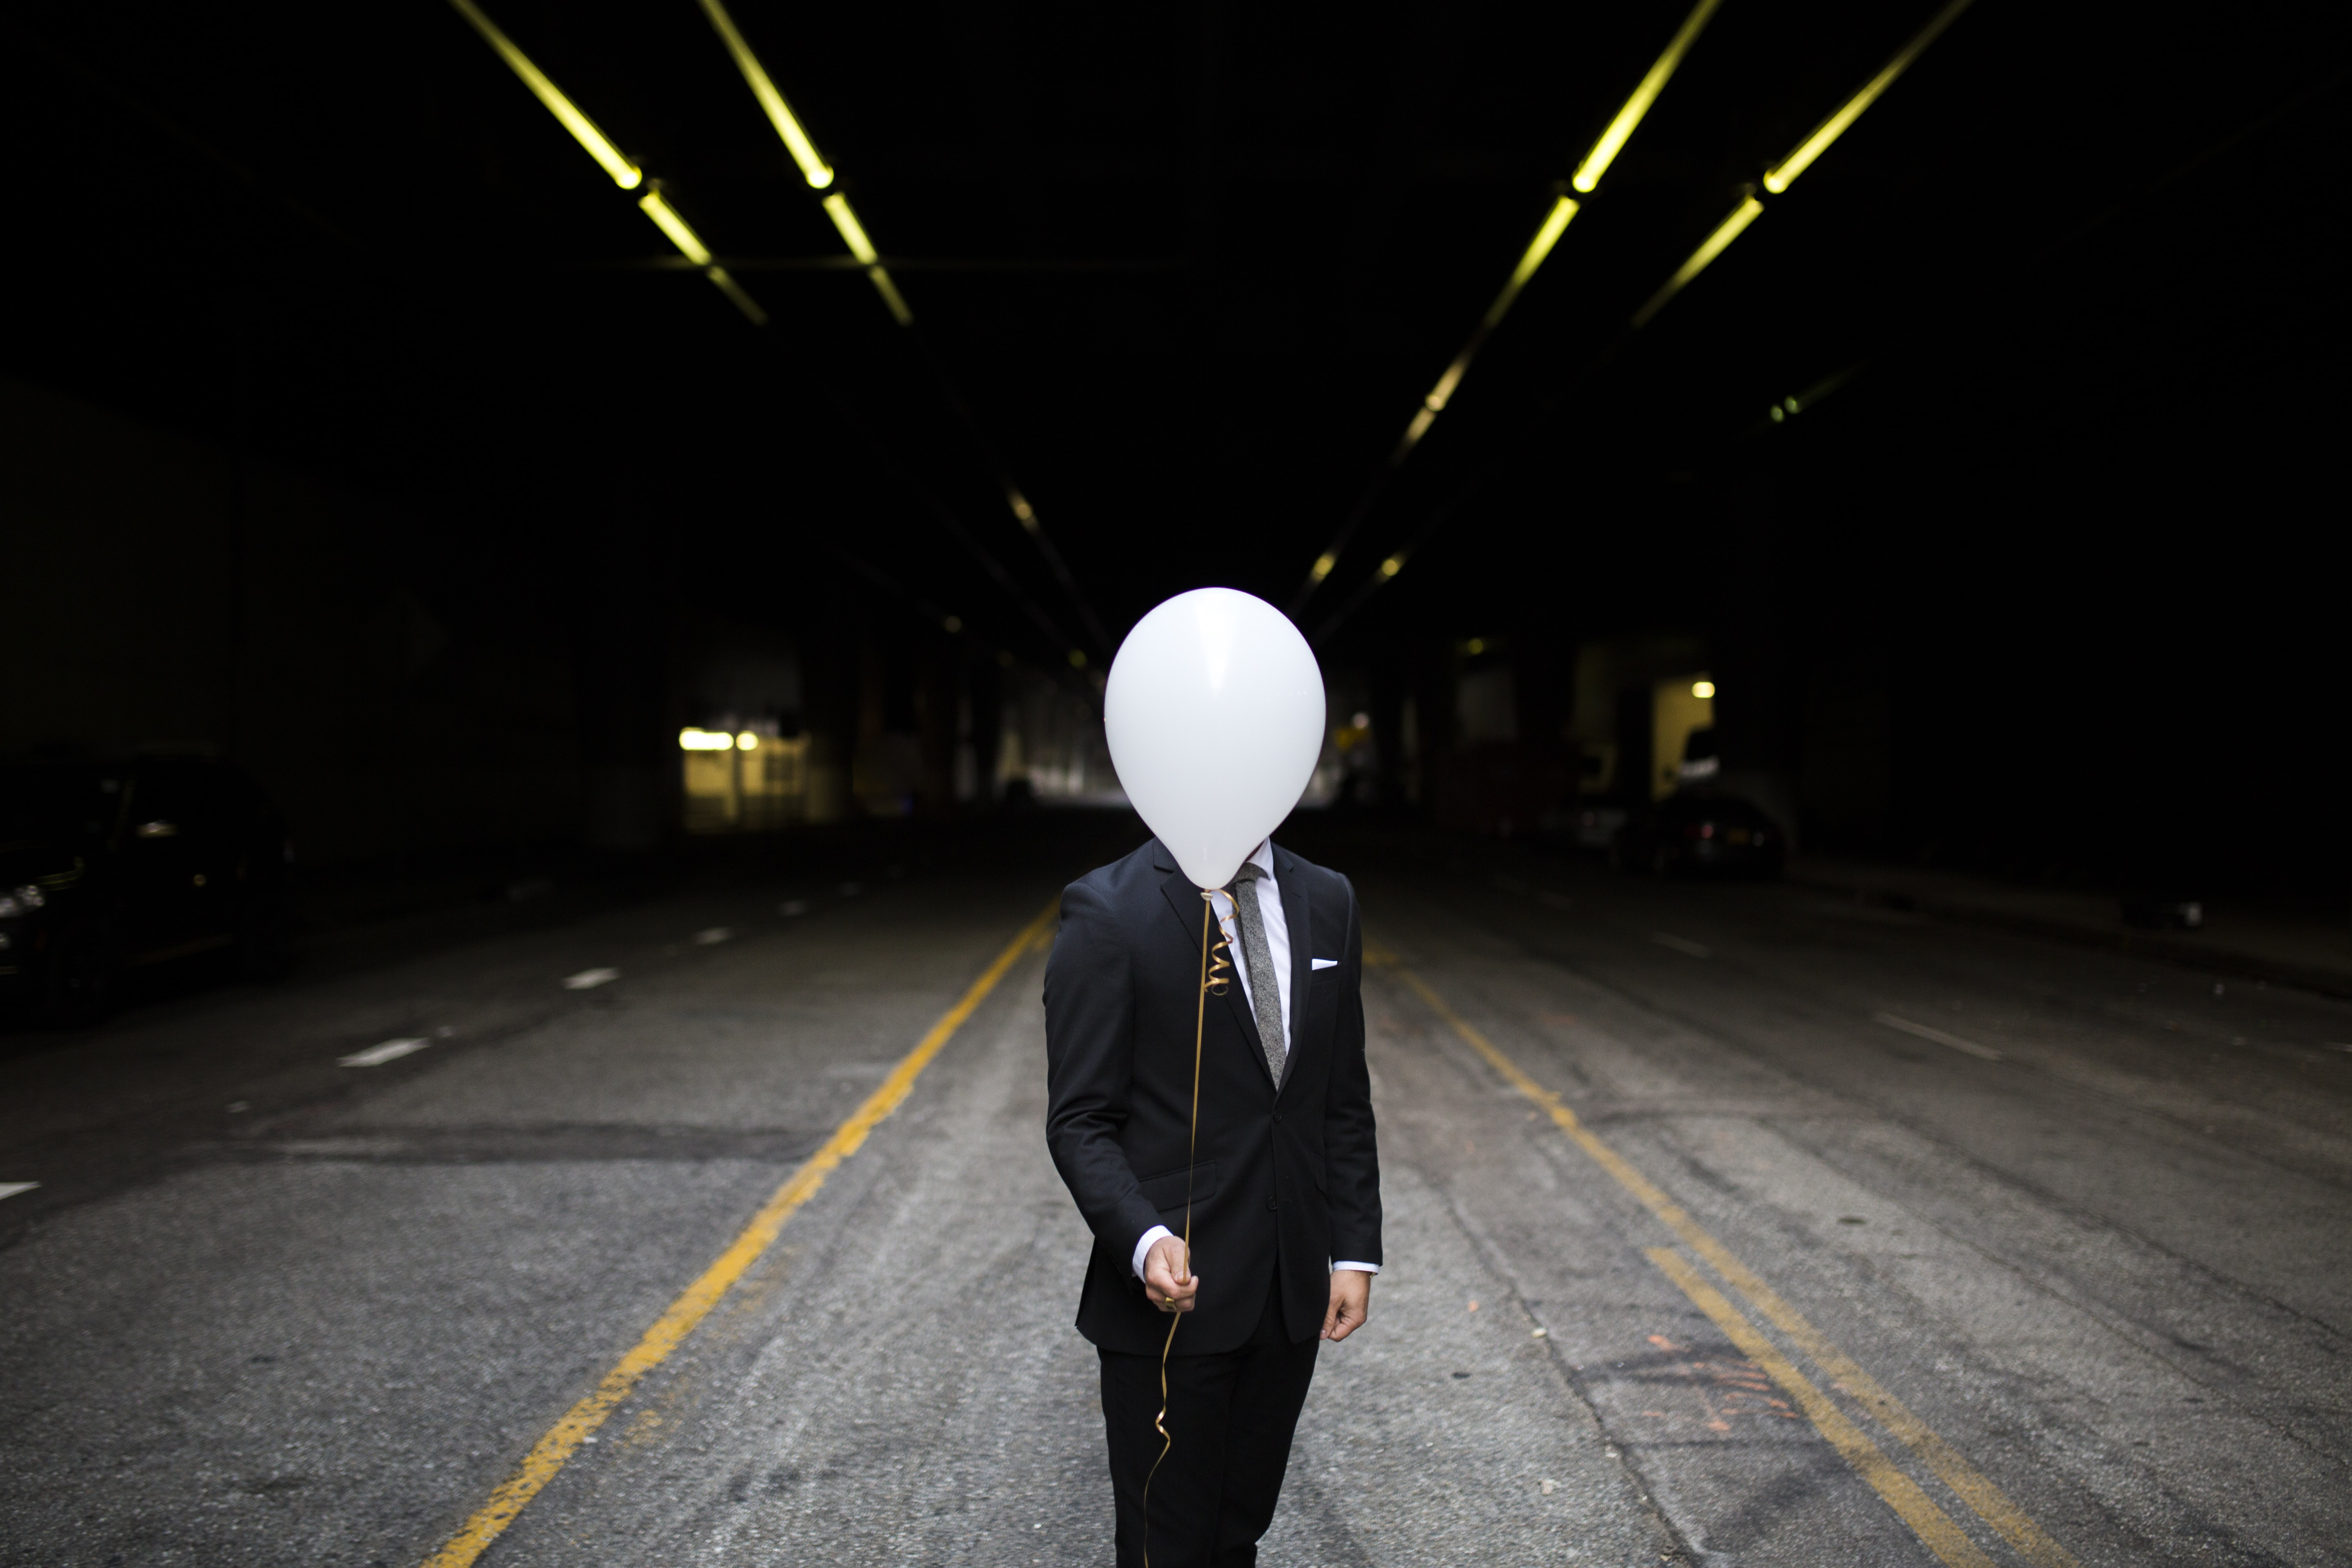 man in formal suit standing while holding white balloon